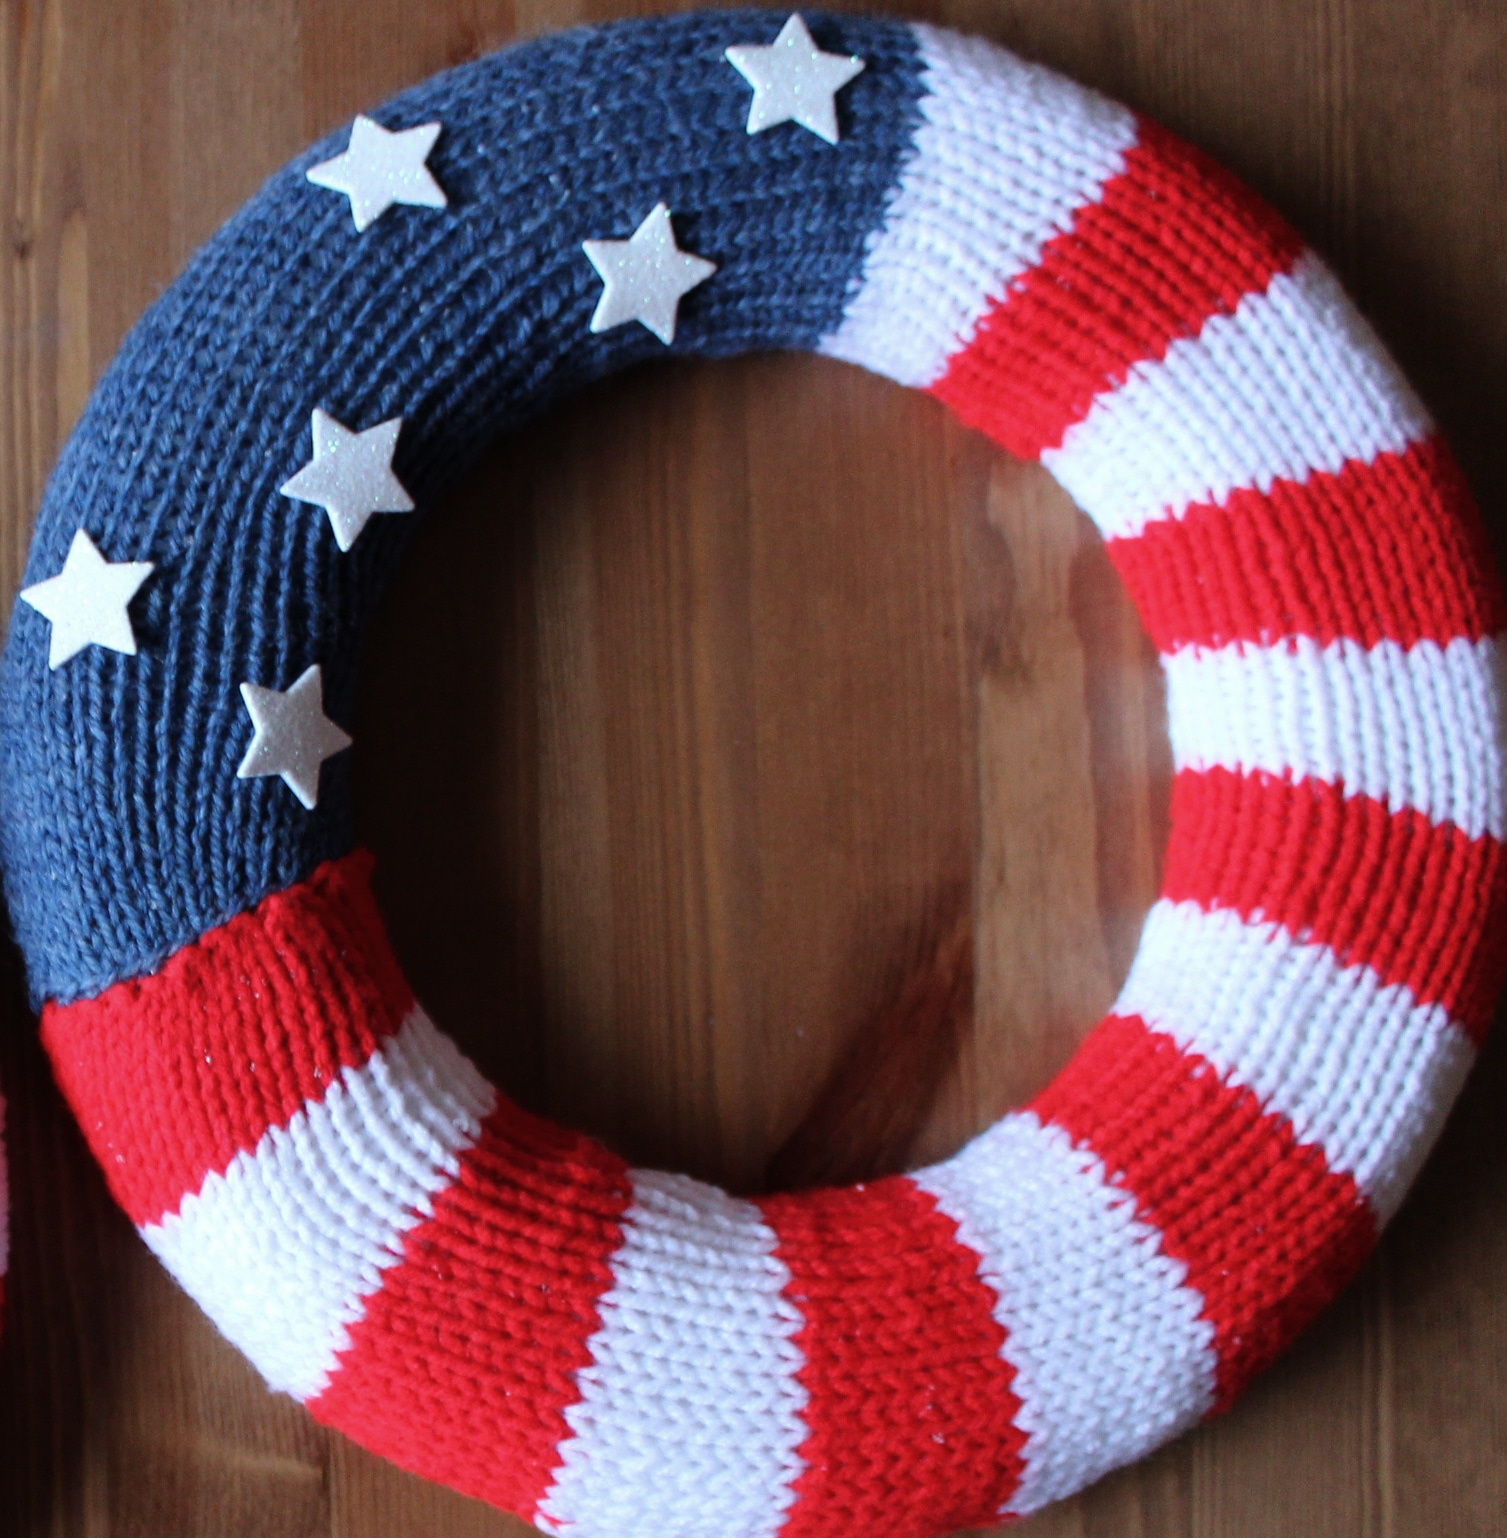 Knit a Patriotic Flag Wreath with Video Tutorial | Studio Knit